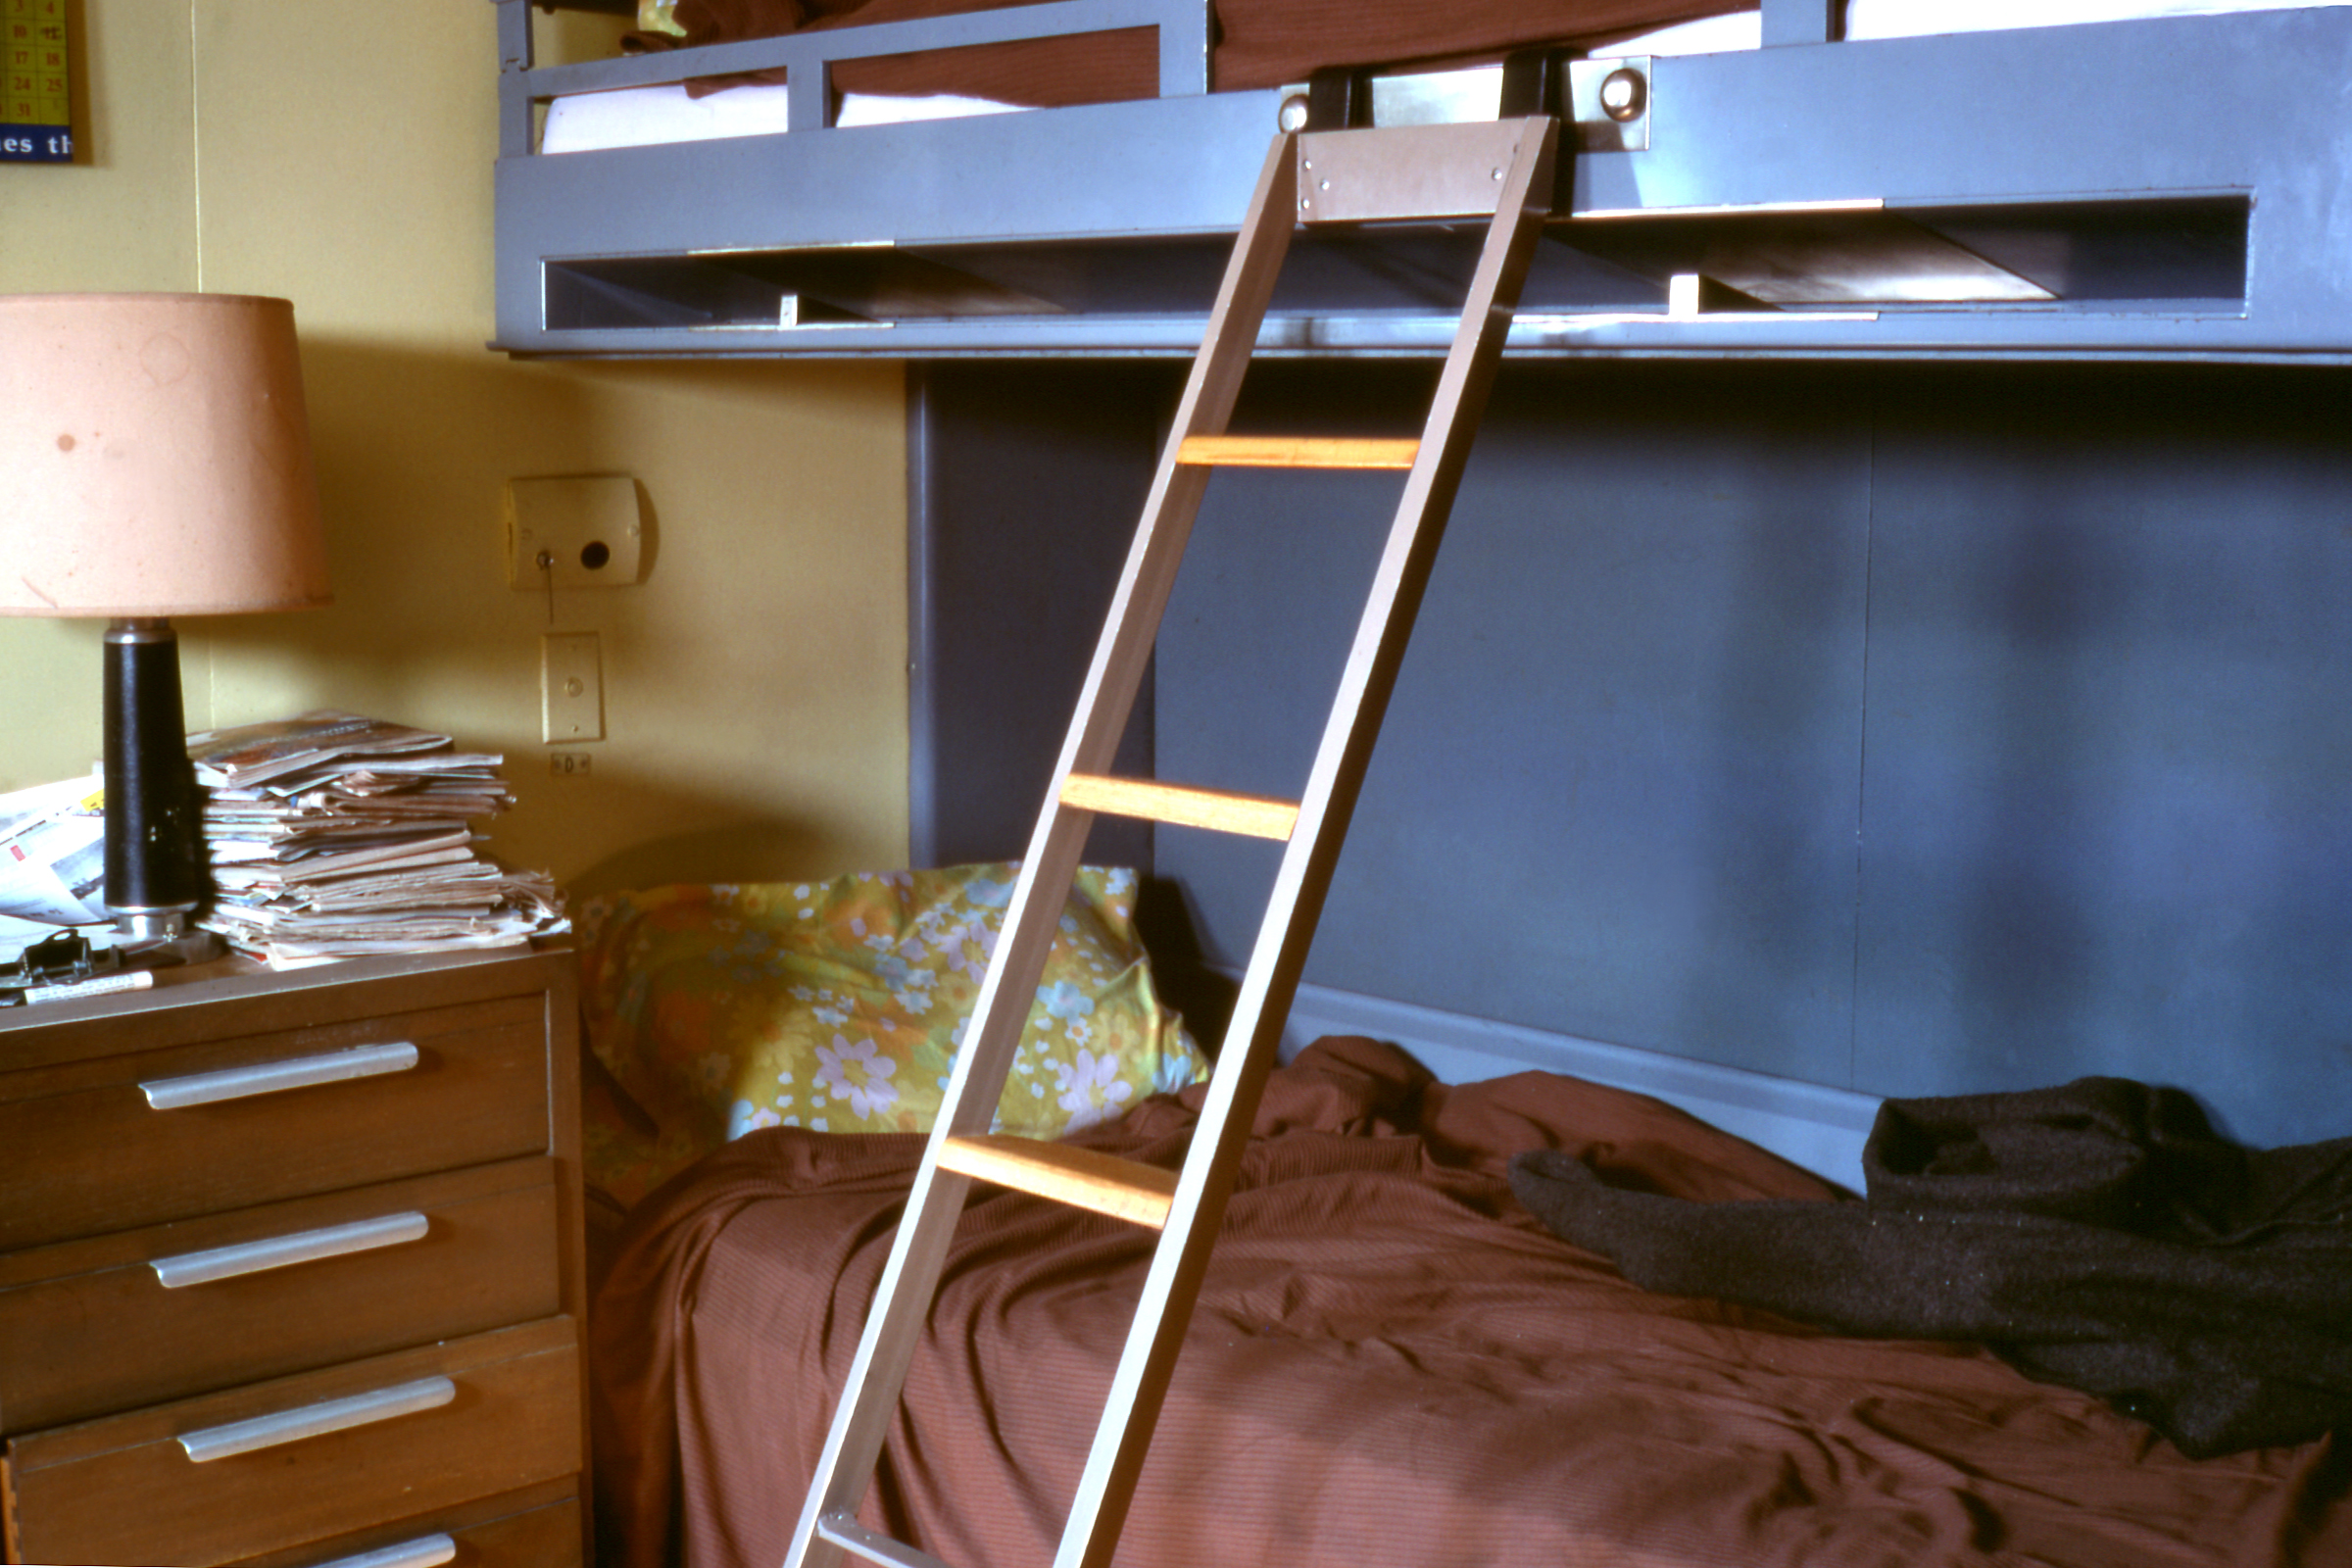 Bunk Bed Ladder 2400 x 1600